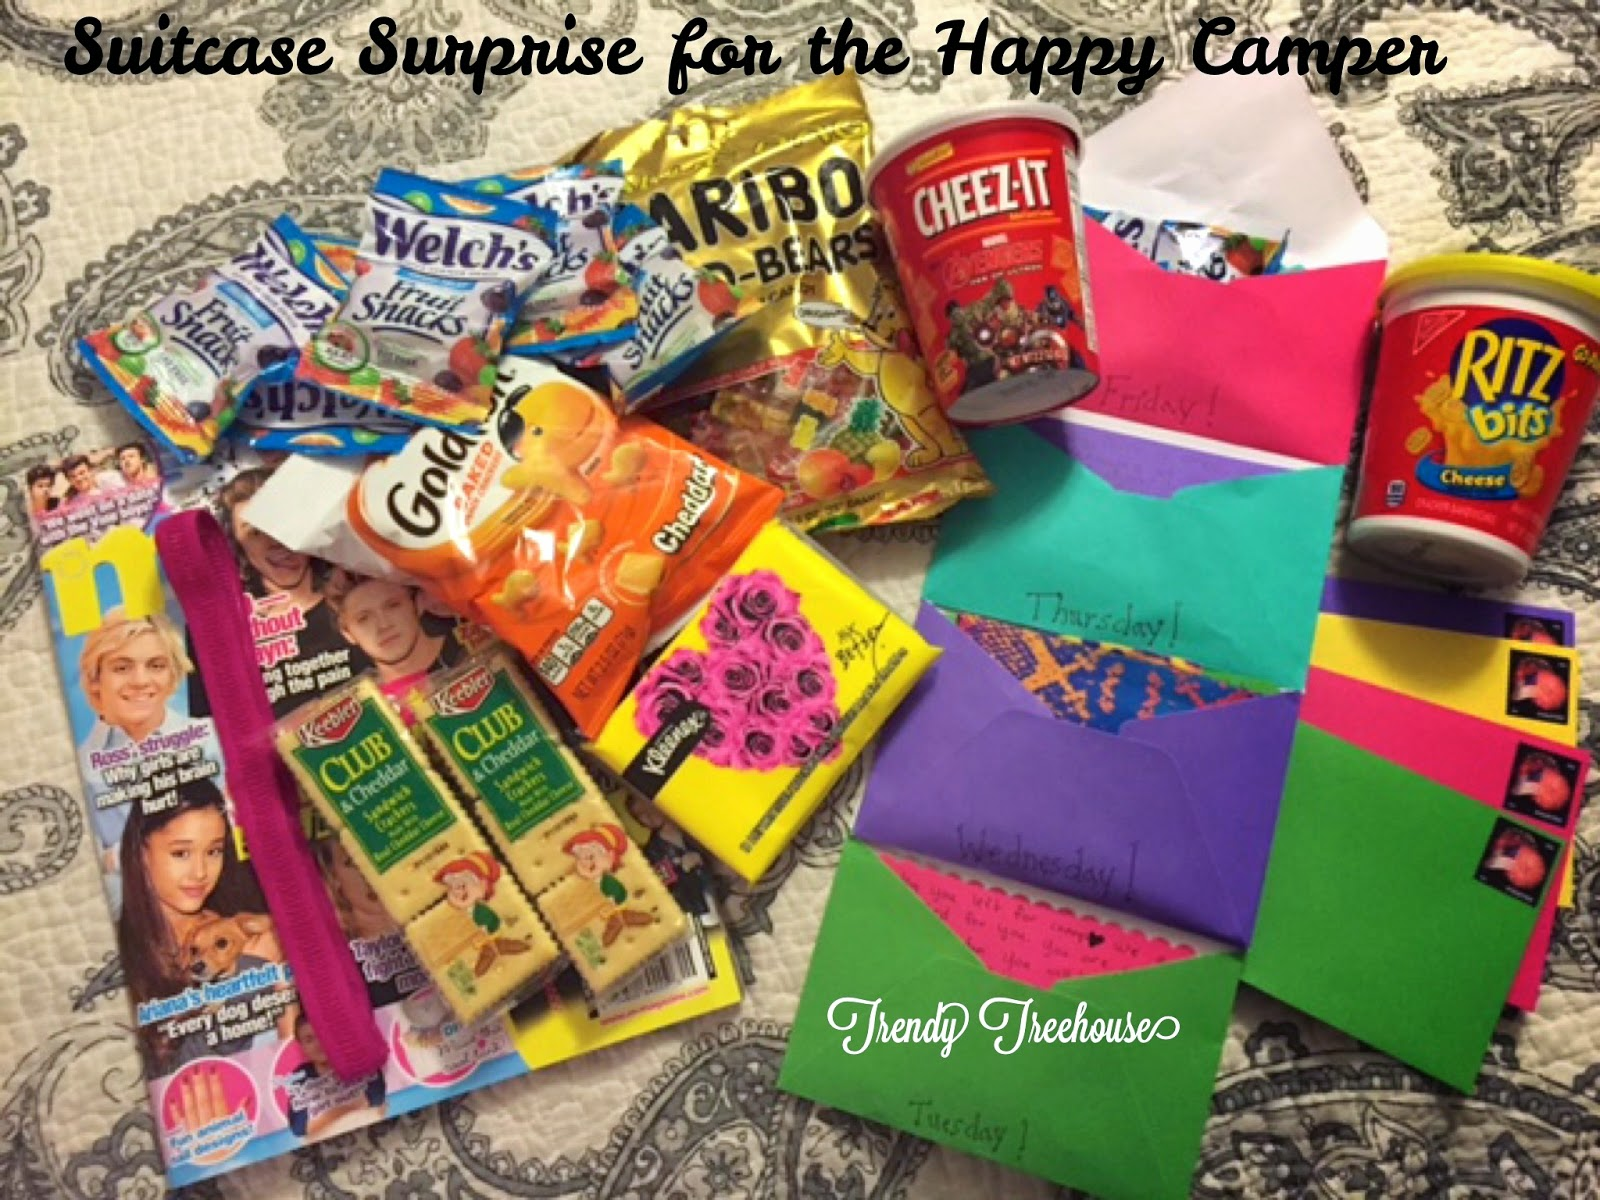 pine creek style: time for camp.care package fun